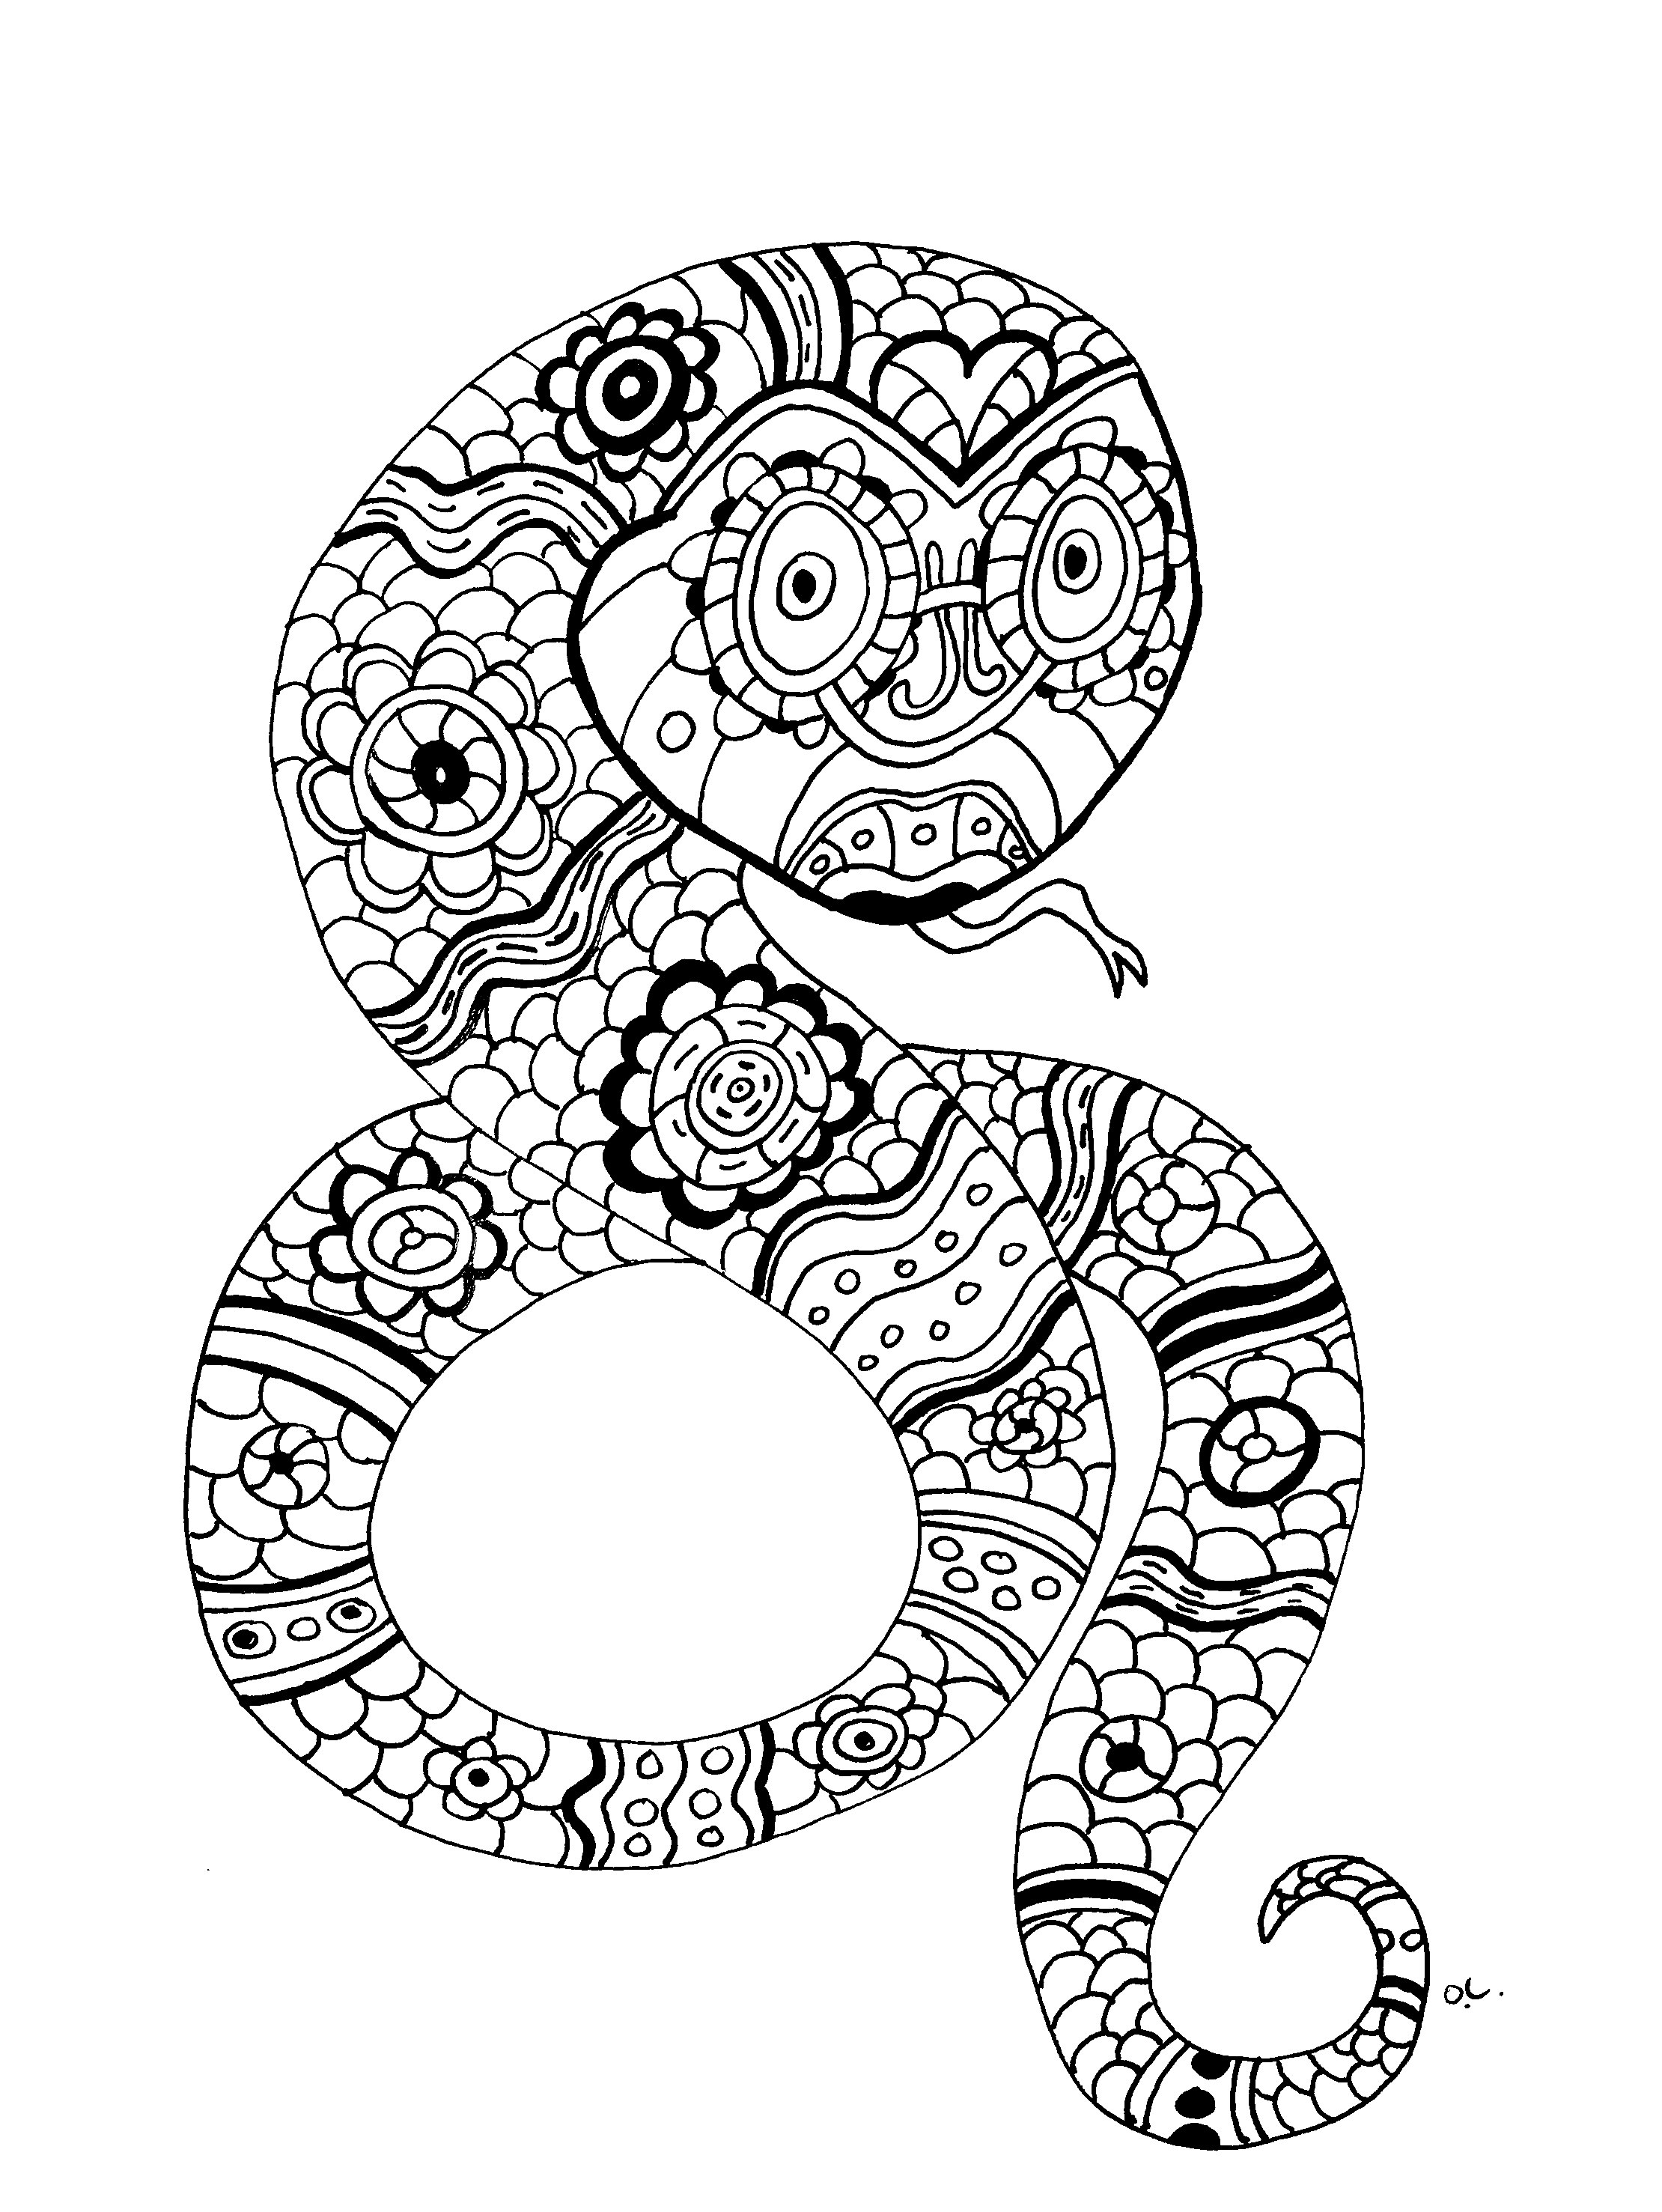 The snake by oliv - Snakes Adult Coloring Pages